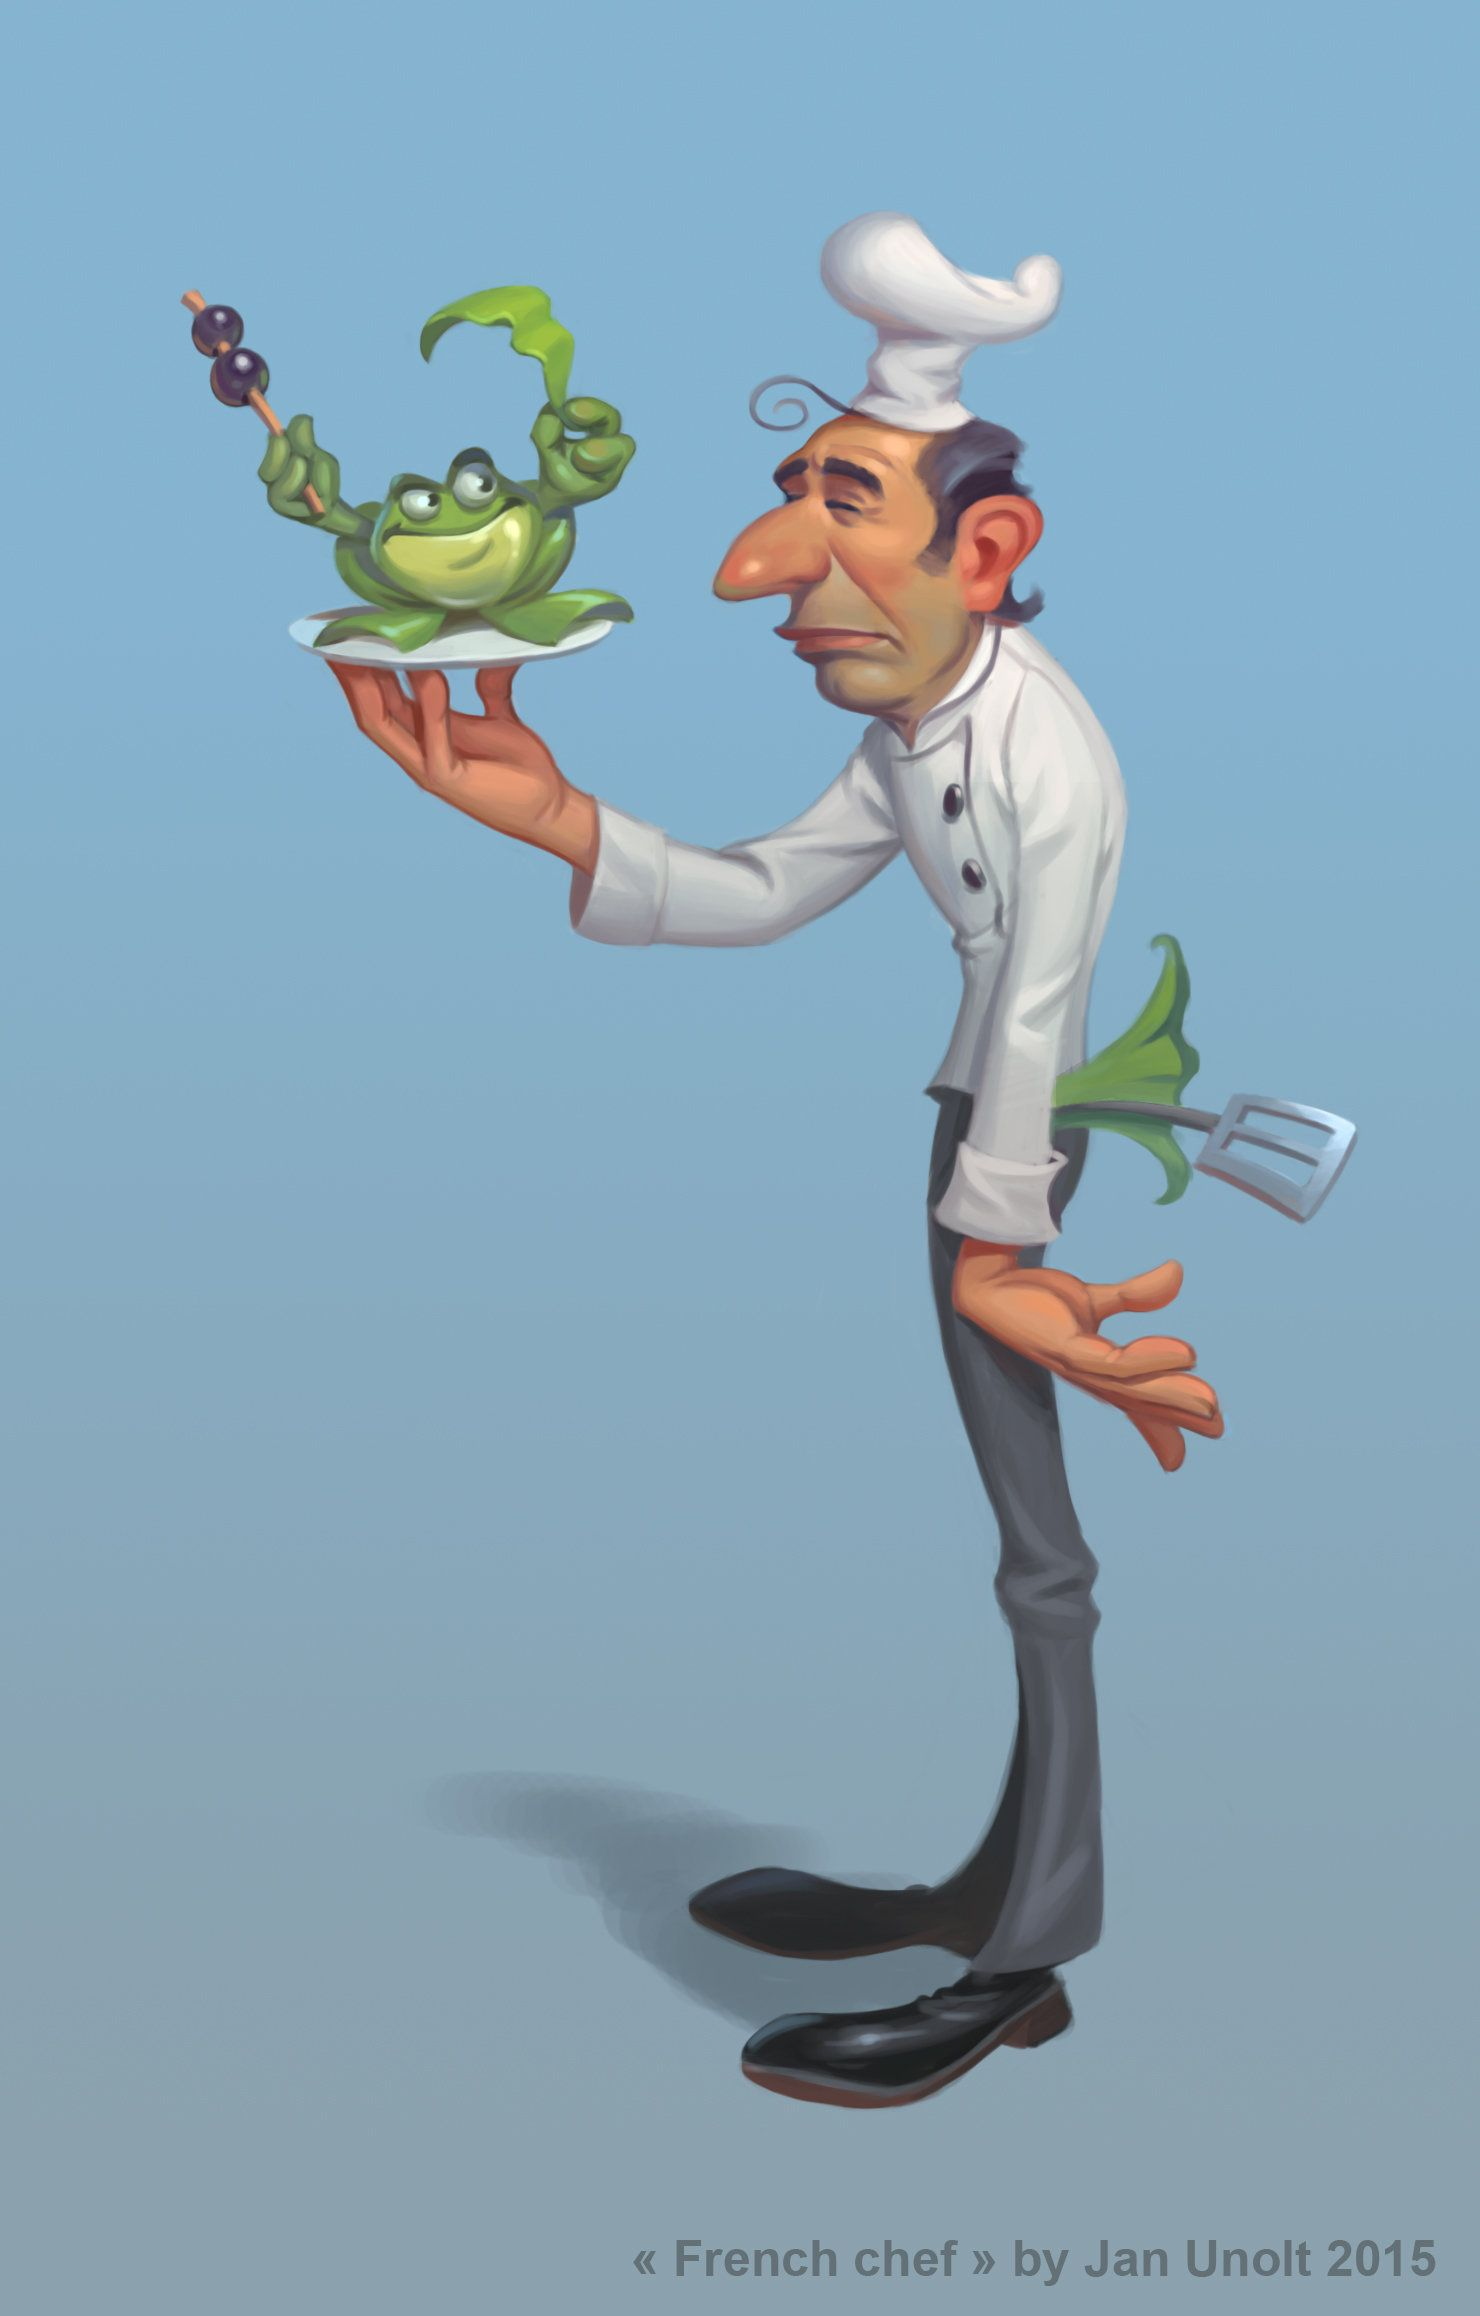 ArtStation - french chef character, Jan Unolt | characters9 ...